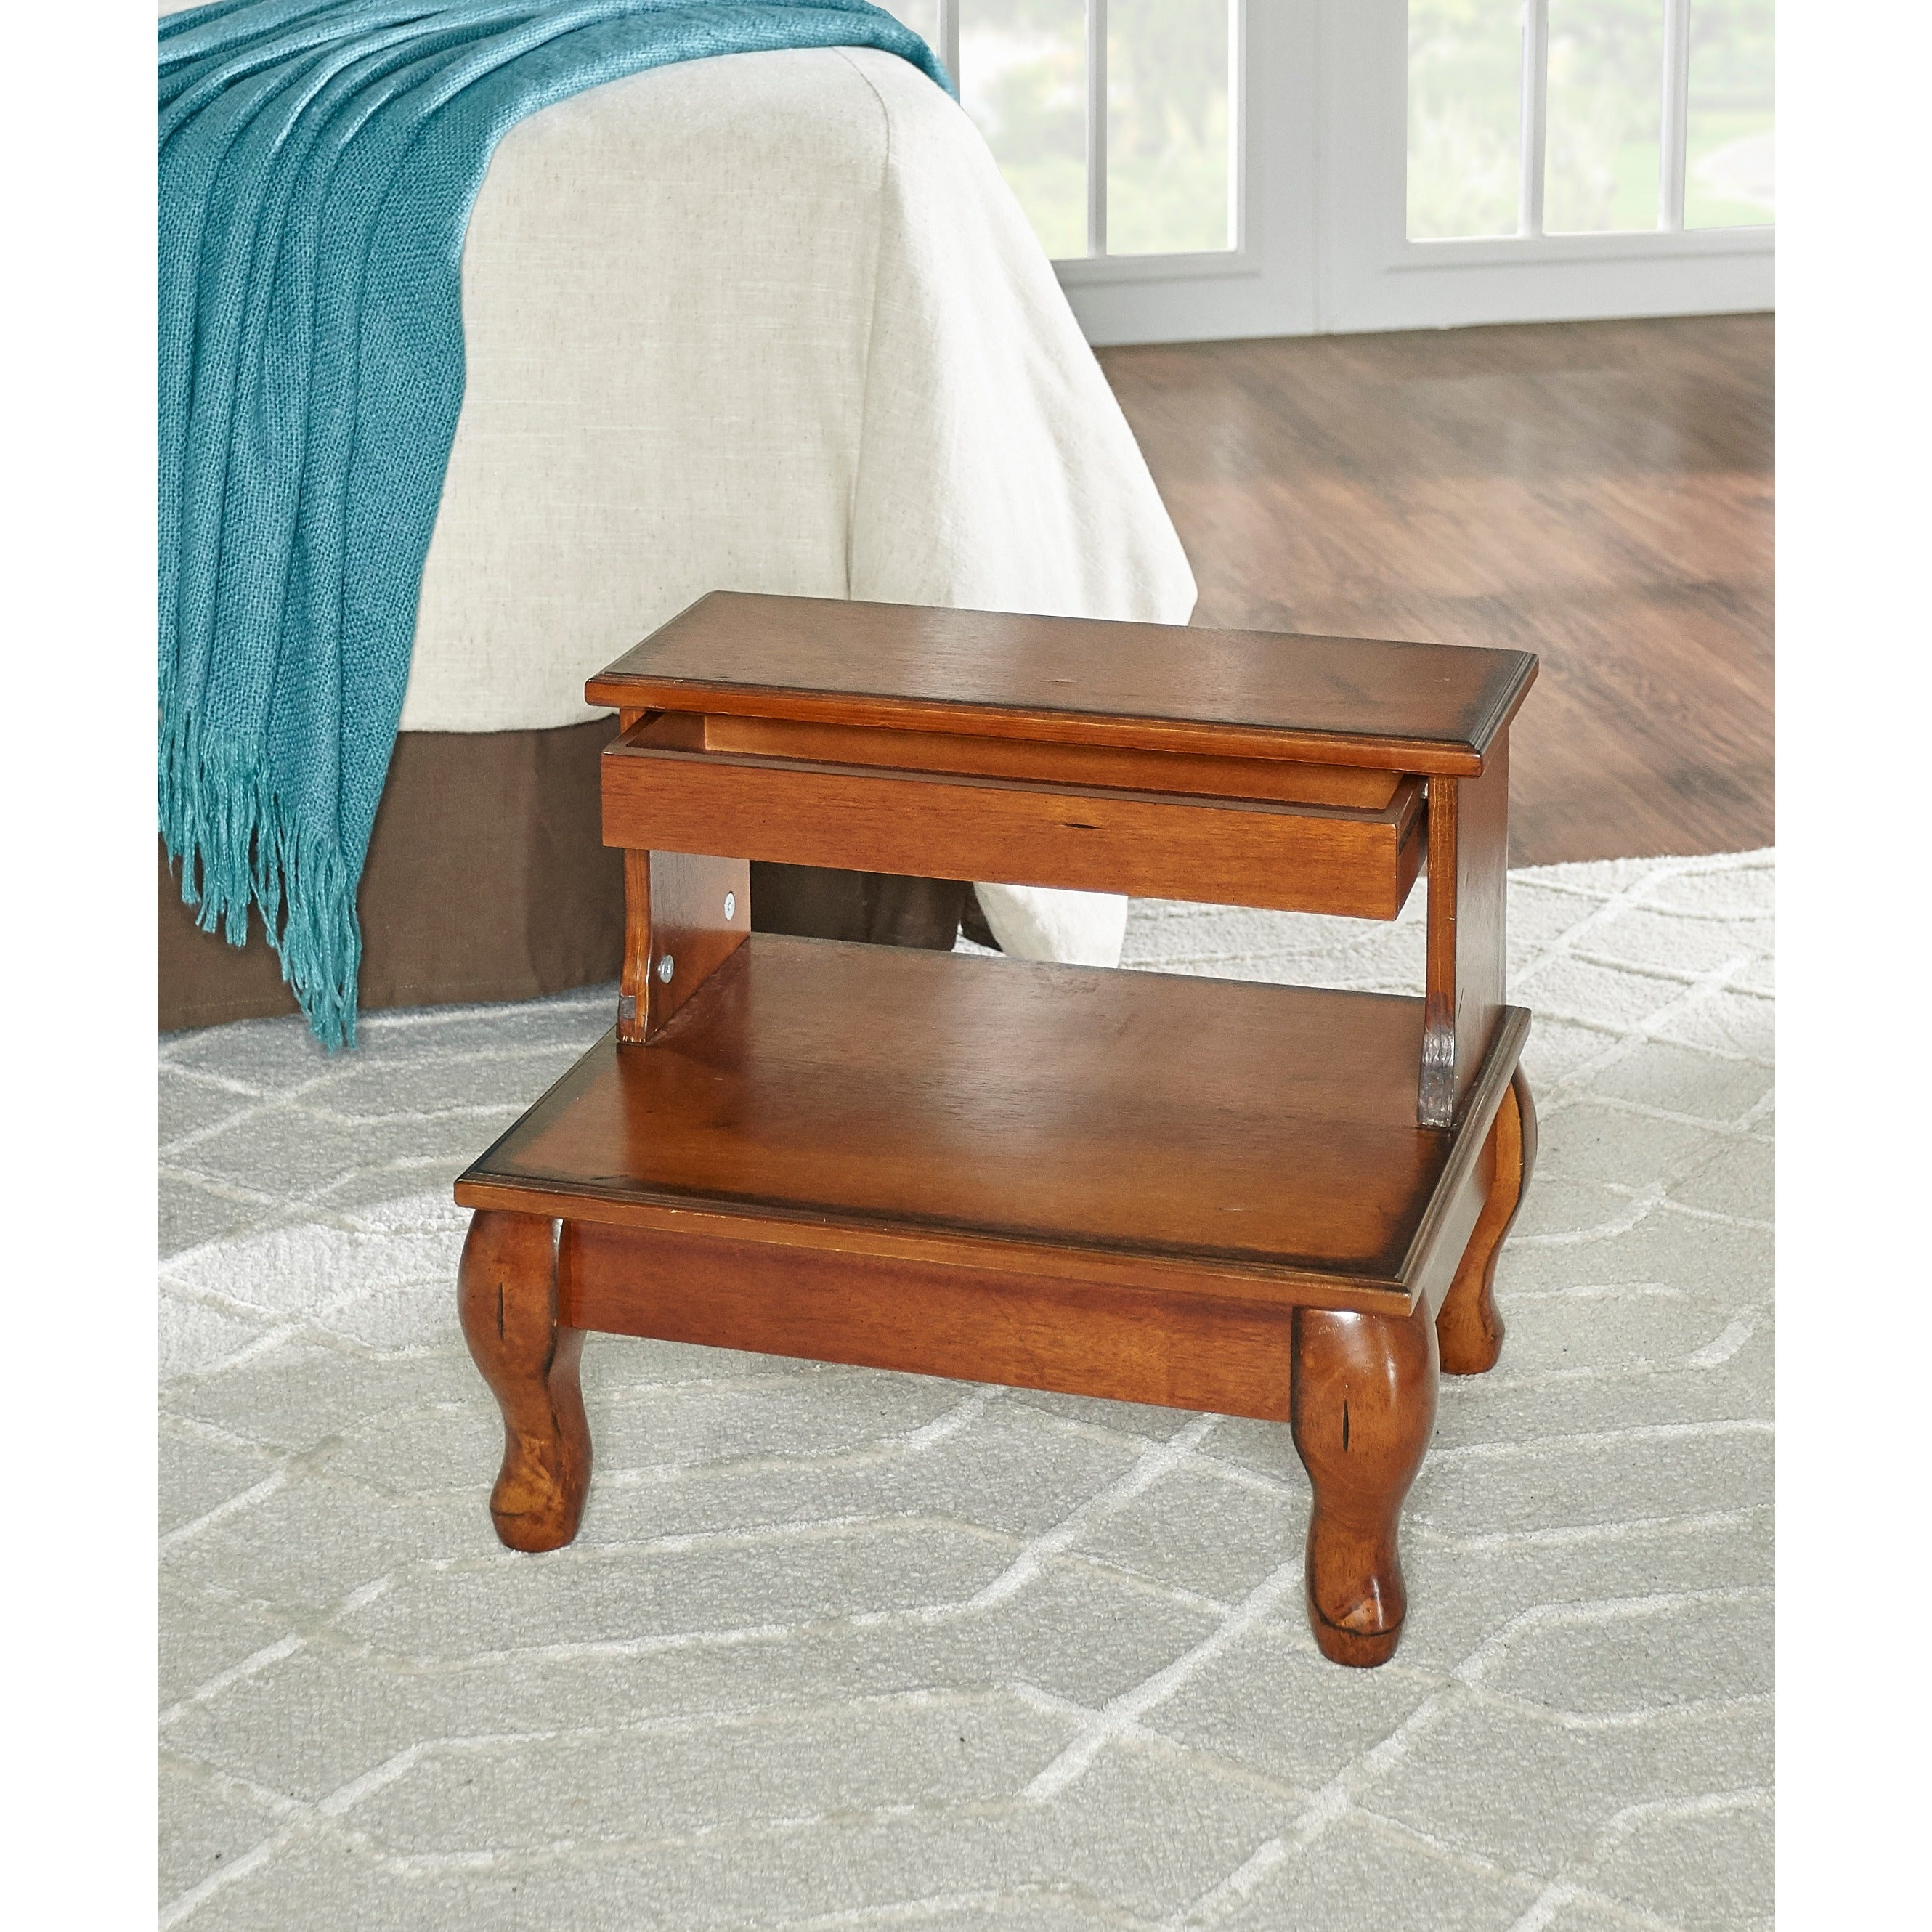 Shop Powell Macon Bed Steps With Drawer   Overpacked   Free Shipping Today    Overstock   9409258